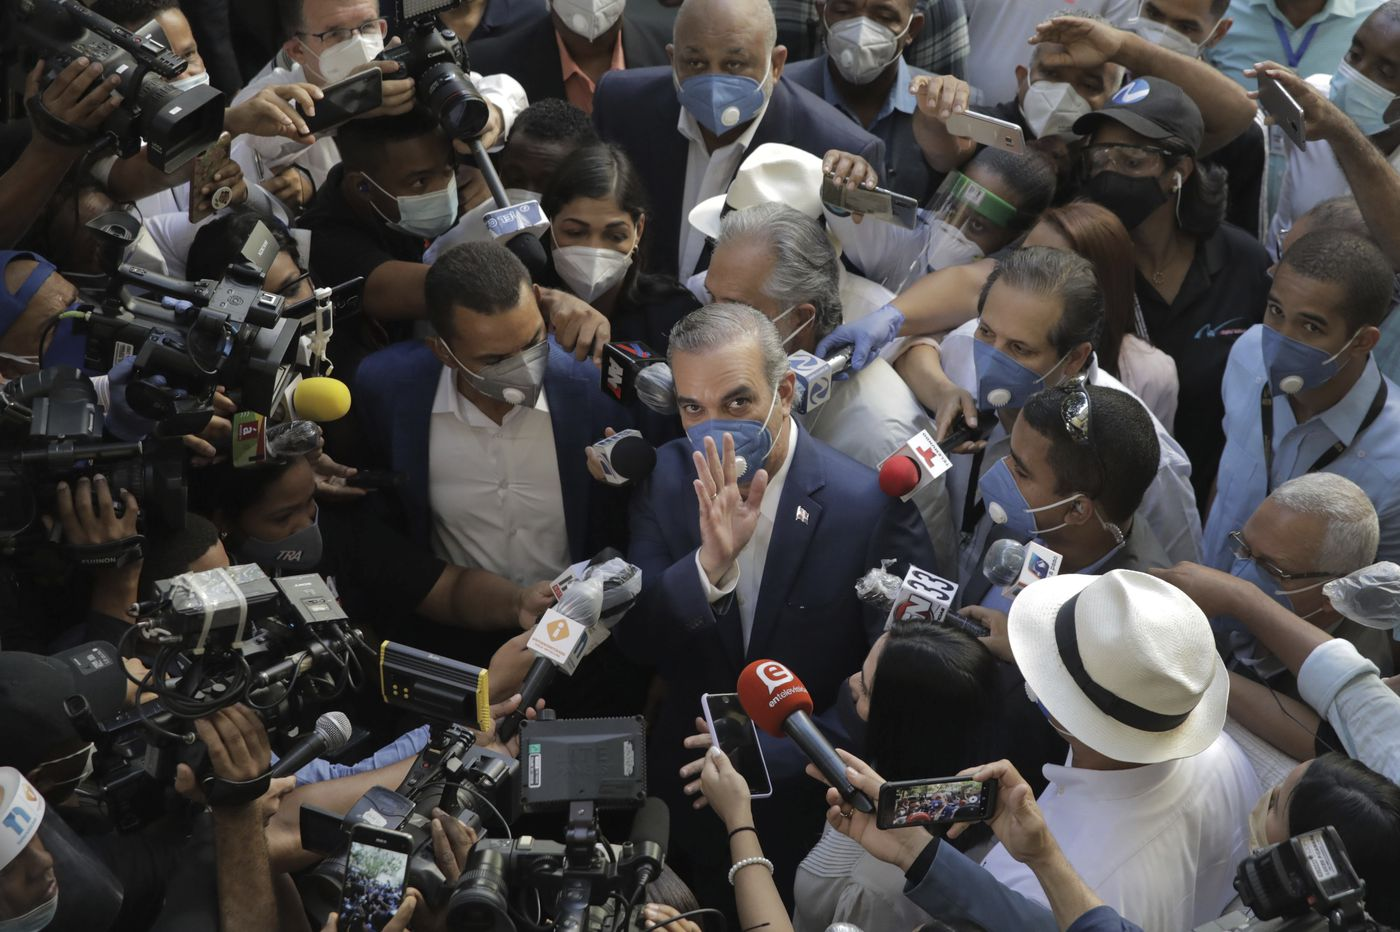 The Dominican Republic has a new president. Philly Dominicans reflect on Luis Abinader's election and challenges.